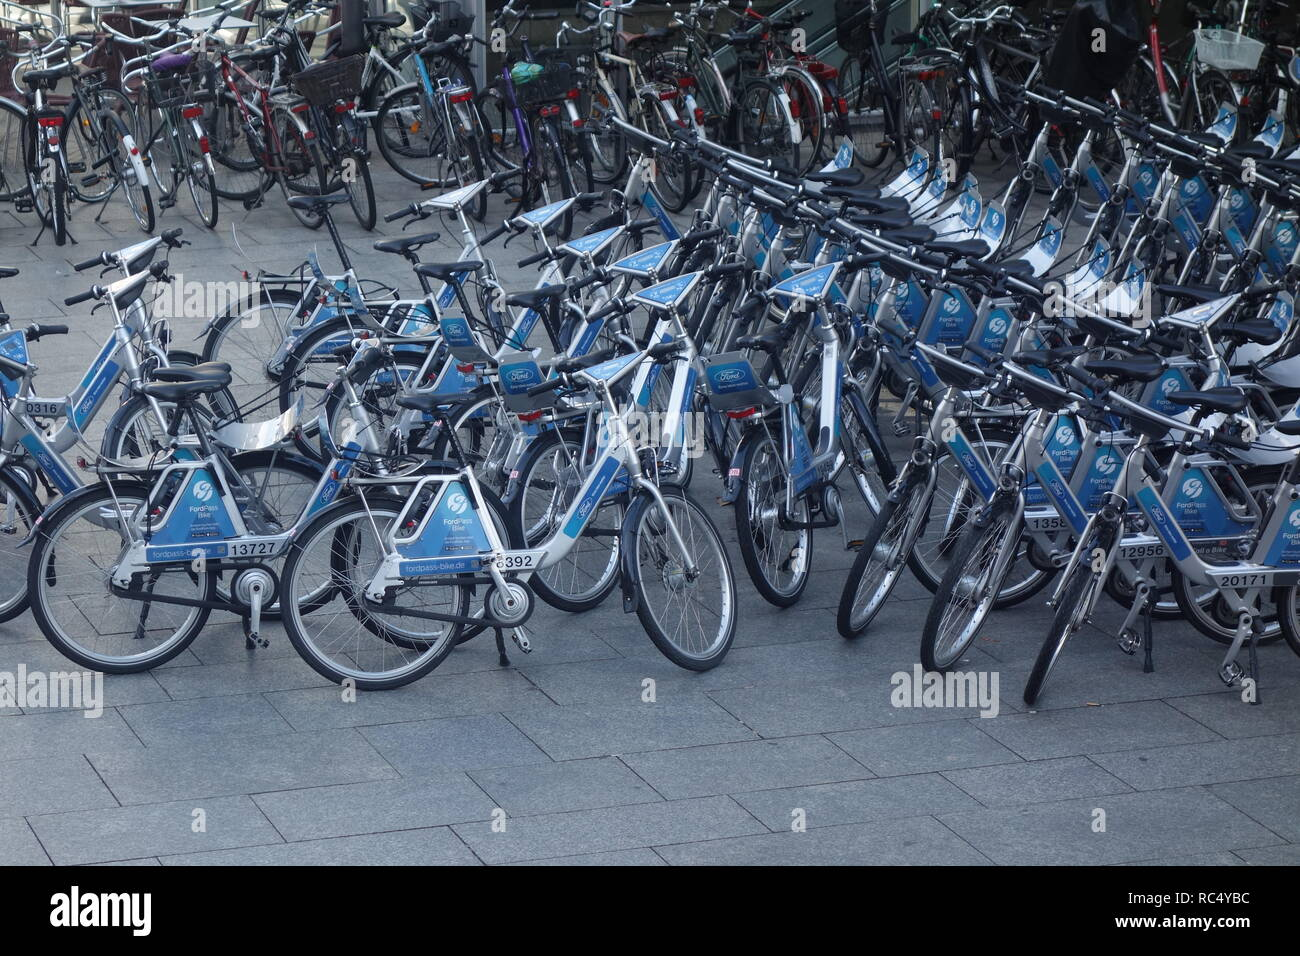 Bicycles for hire outside the main train station in Cologne, one of several bike hire schemes available in the city. - Stock Image